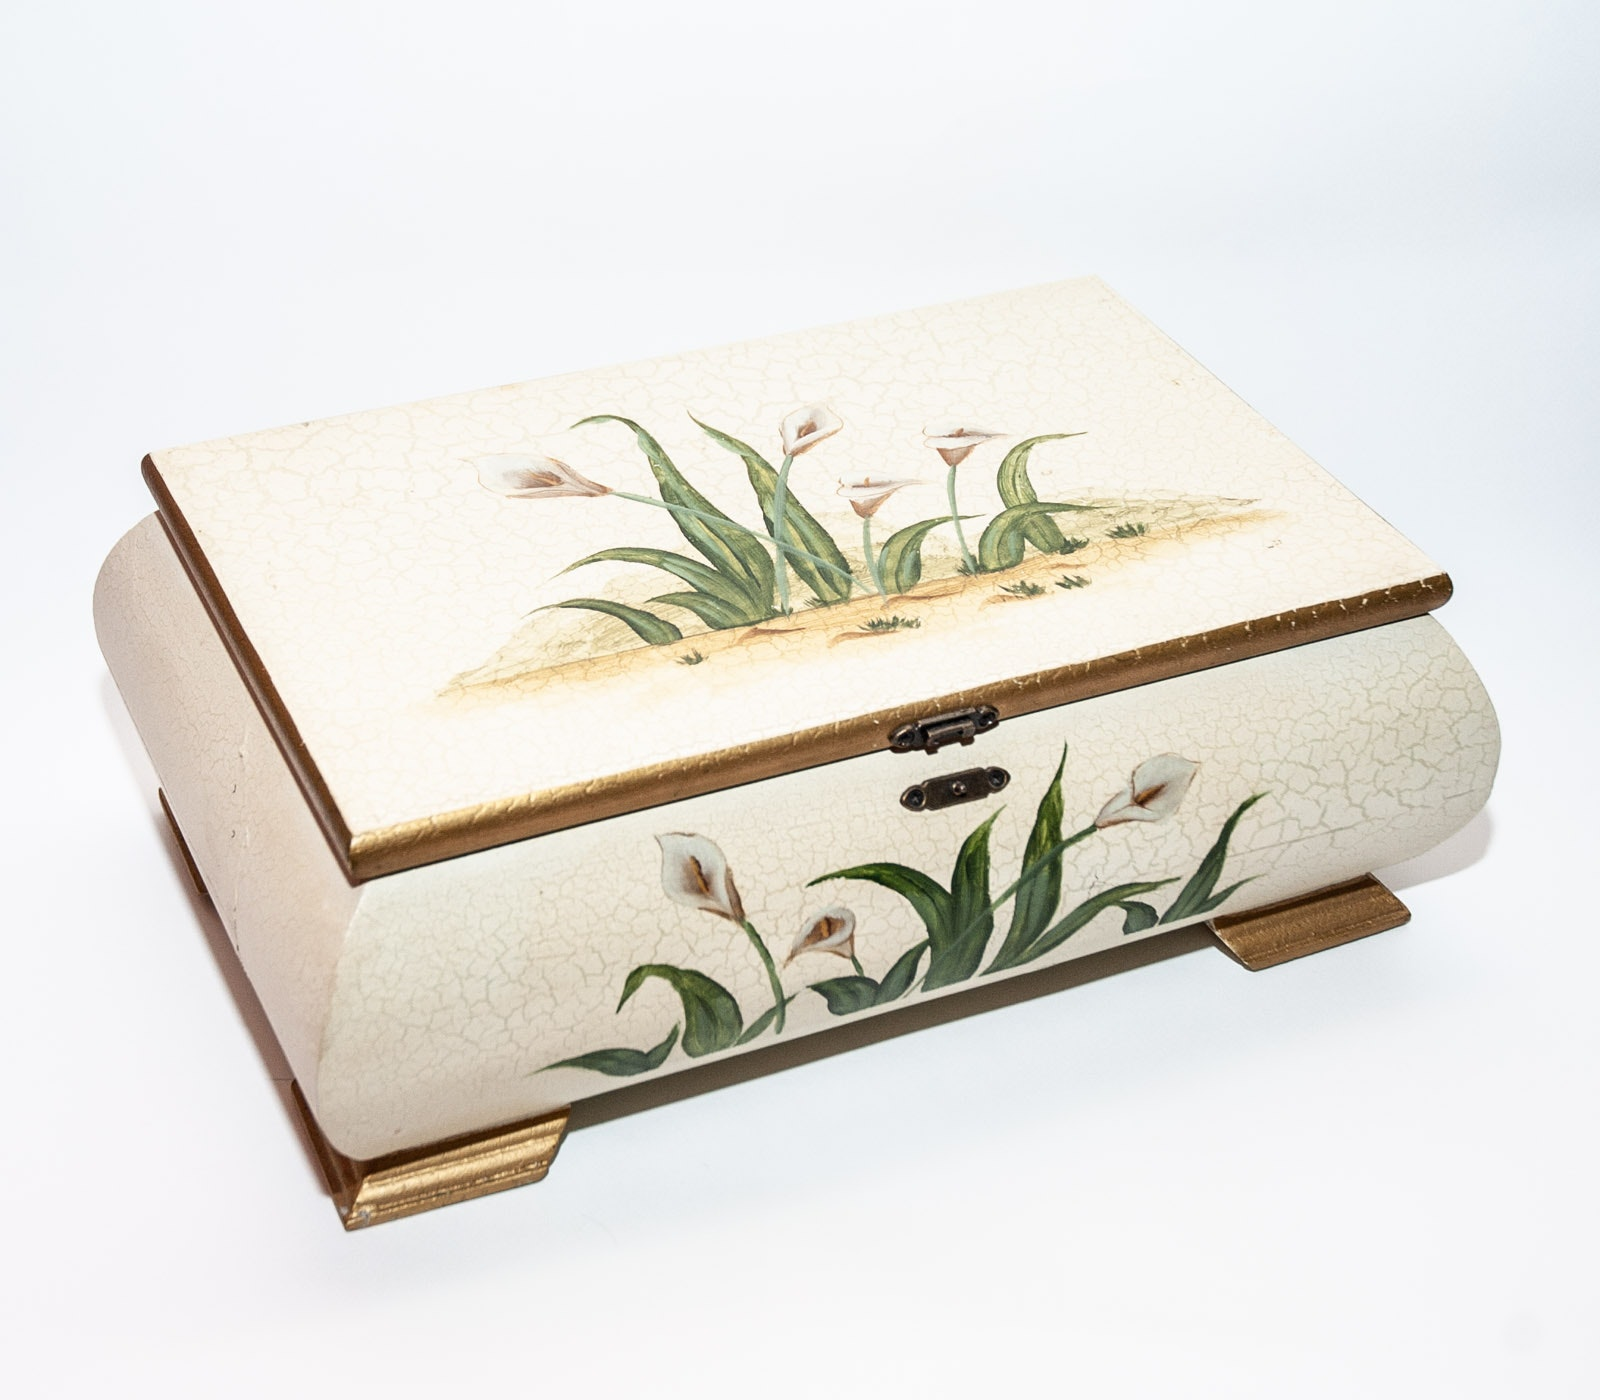 Painted Wooden Jewelry Box